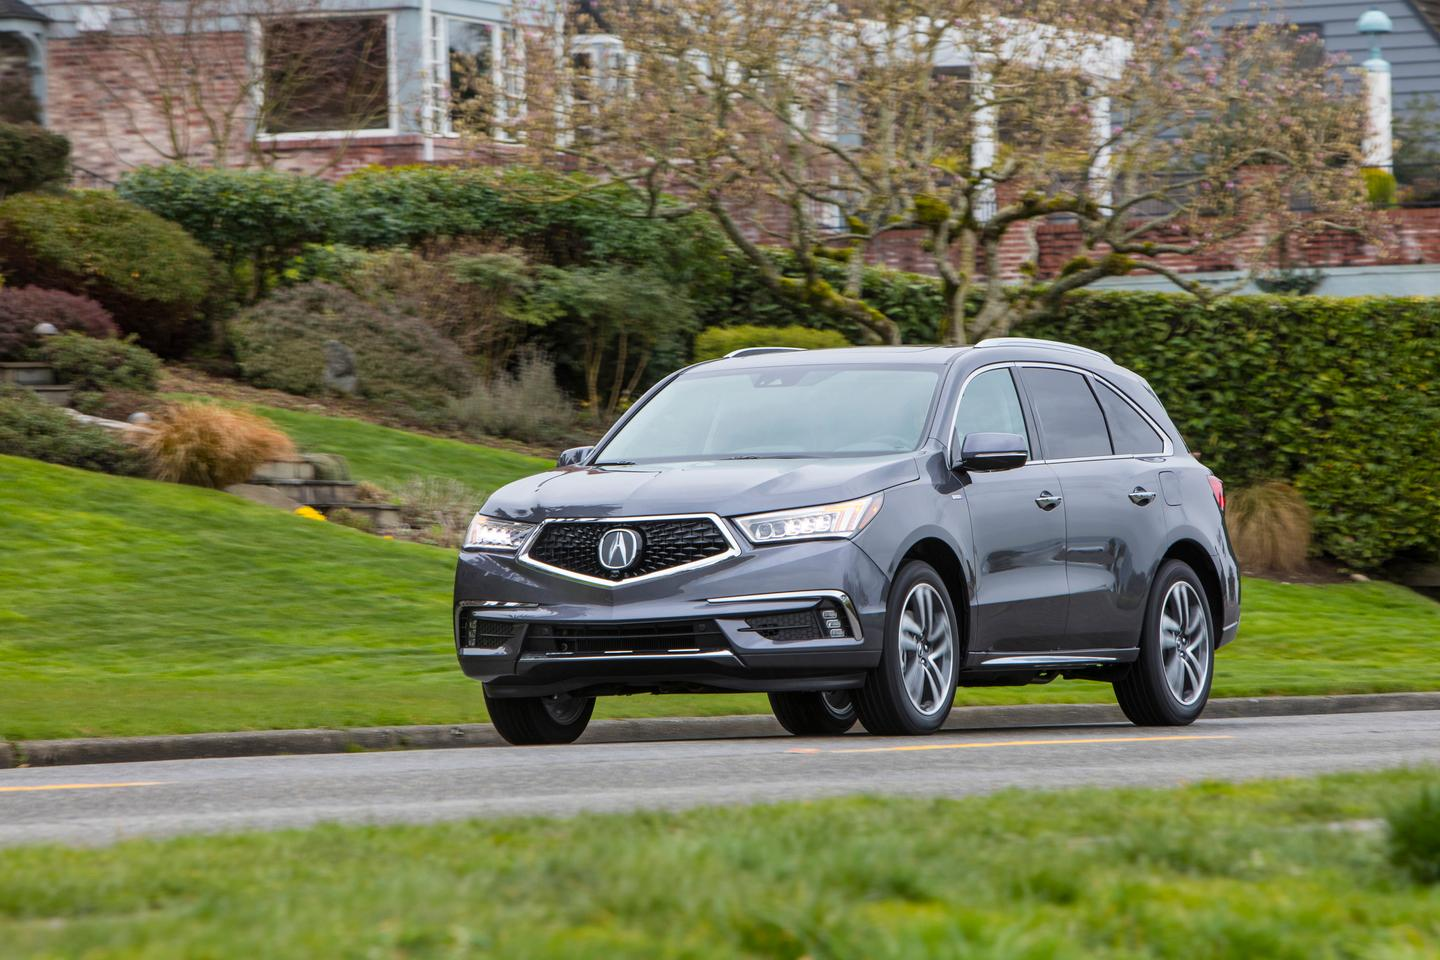 Fuel economy in the 2017 MDX Sport Hybrid is rated at 27 mpg combined (10.5 l/100km). Our week with the MDX hybrid returned less than that on average